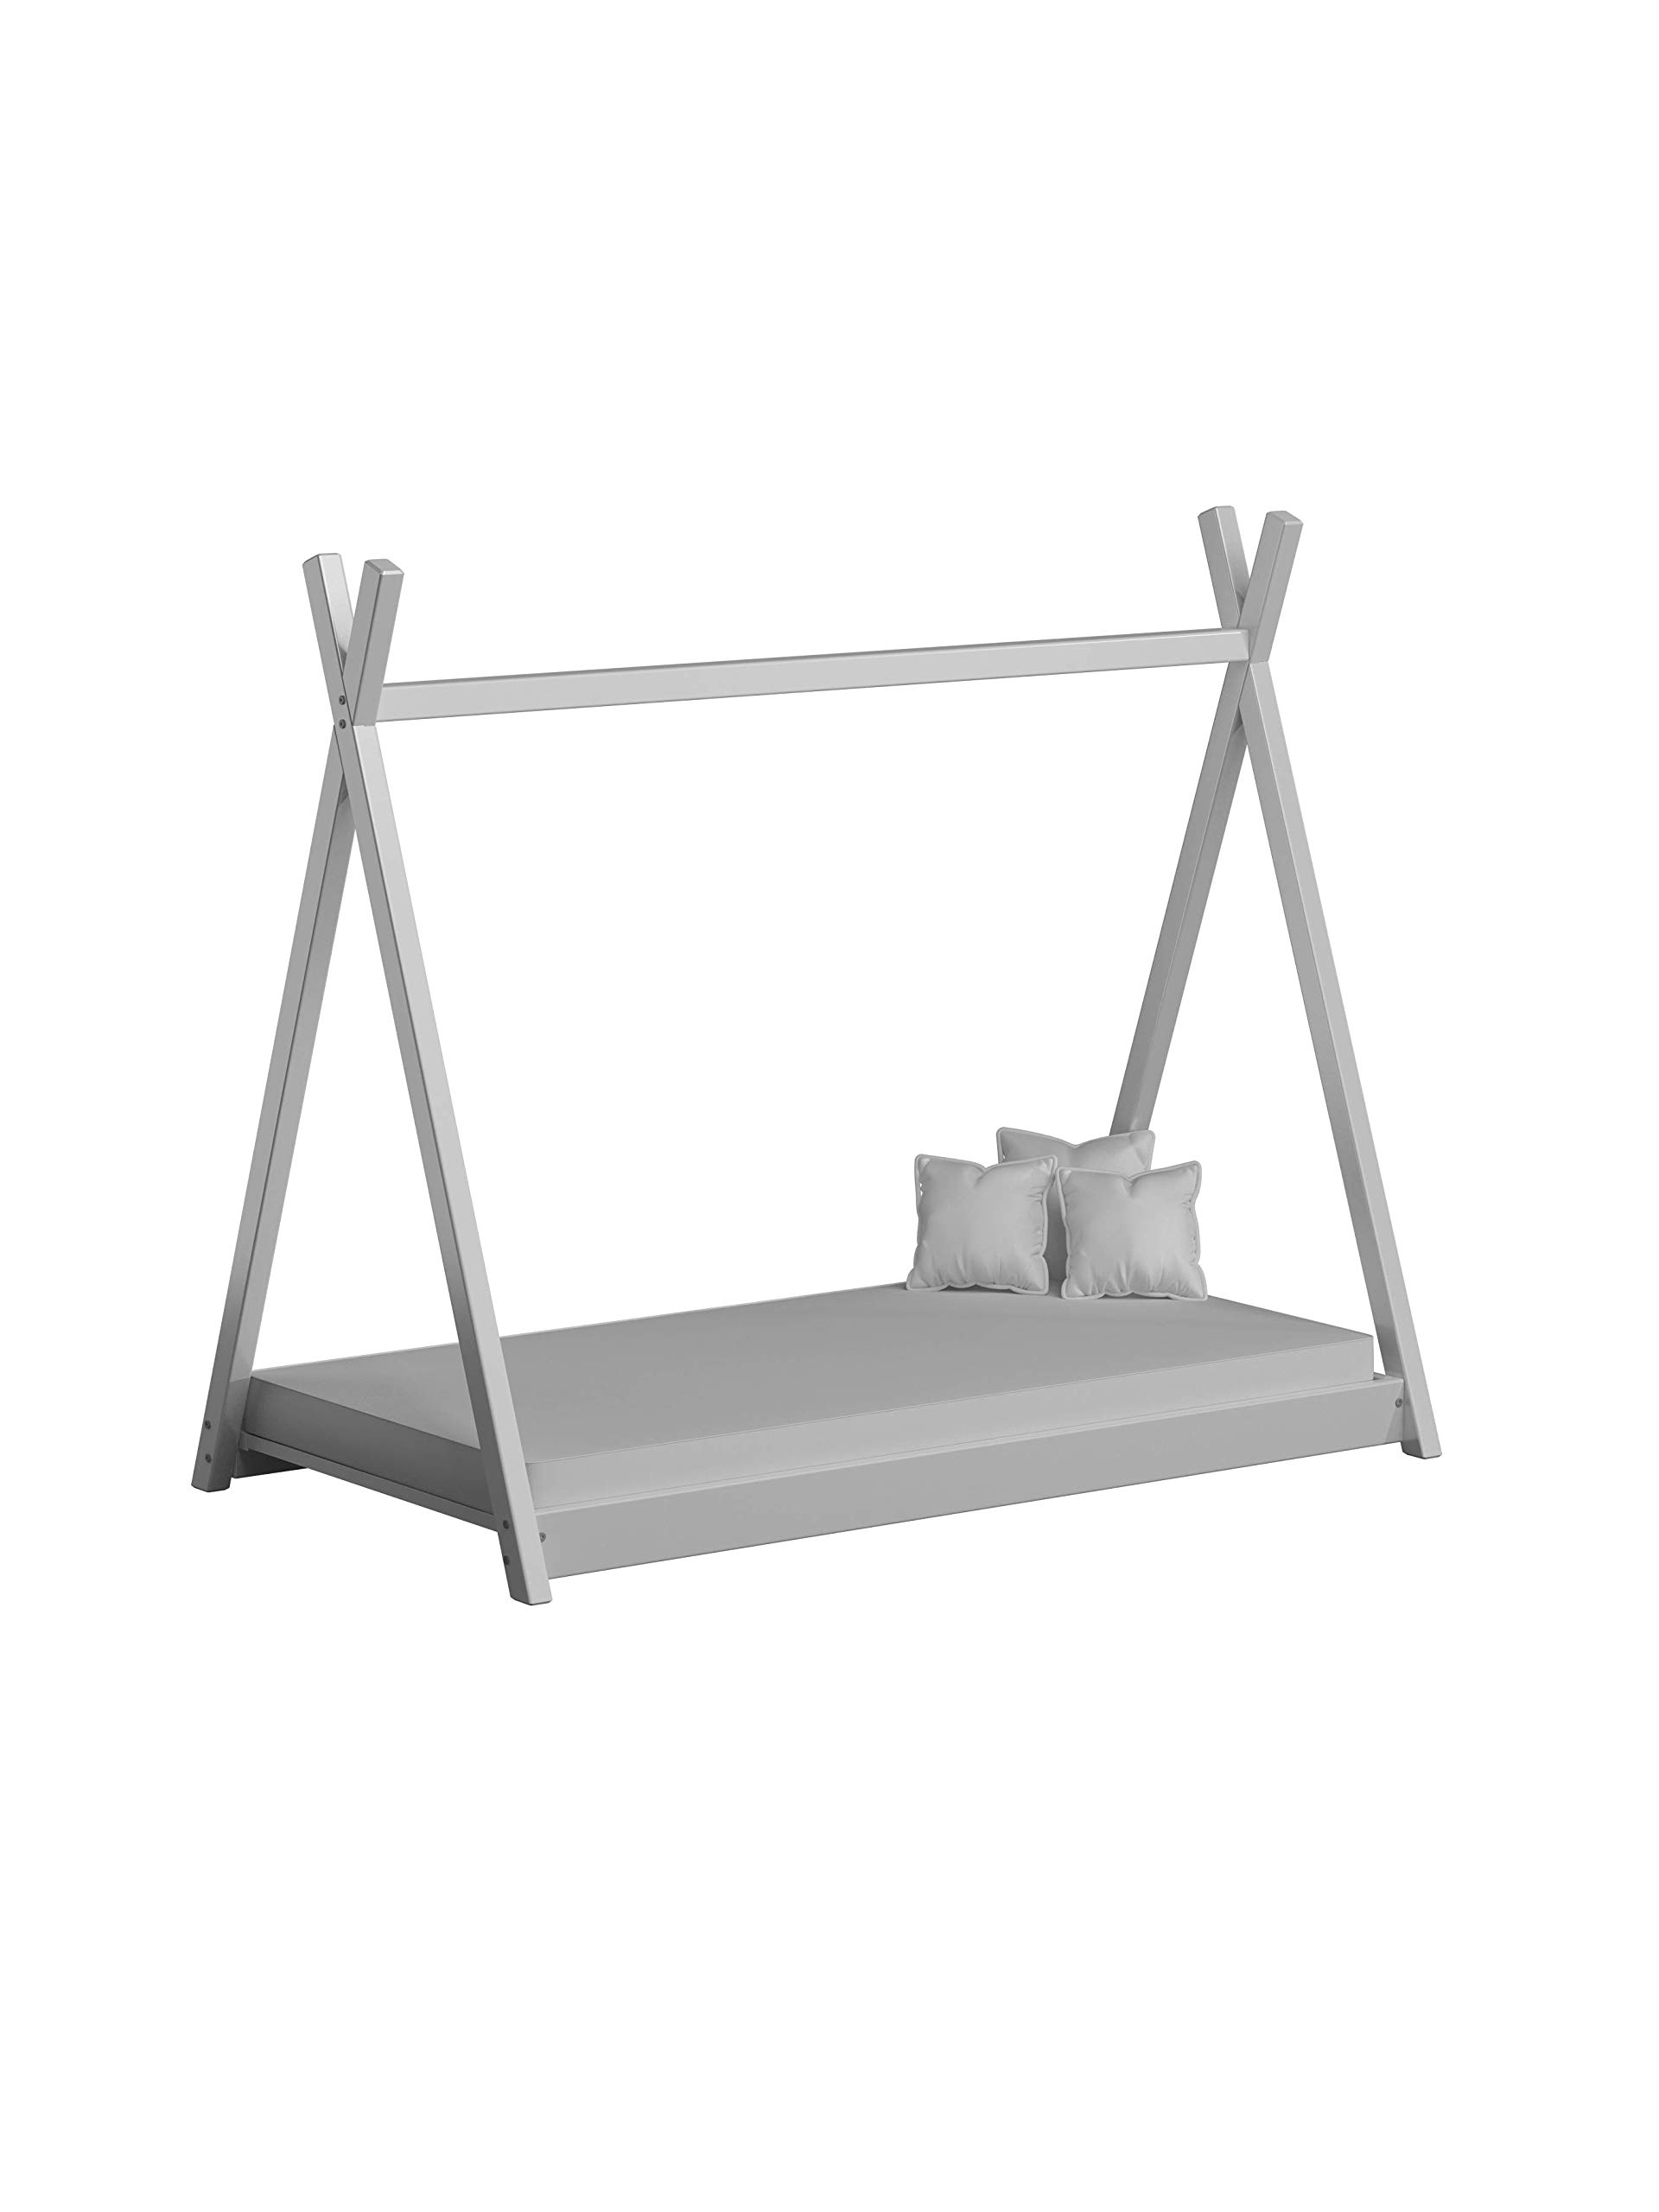 Children's Beds Home Solid Wood Single Canopy Bed - Titus Tepee Style for Kids Children Toddler Junior - No Mattress Included (160x80, White) Children's Beds Home Internal Dimensions in cm's are 140x70, 160x80, 180x80, 180x90, 190x90, 200x90 (External Dimension: 148x83, 168x93, 188x93, 188x103, 198x103, 208x103) Total height up to the top of the structure is 143 cm Made of Solid wood. Has load capacity of up to 190kg, Very Safe Rounded edges on all parts Very Stable and Robust Construction 1